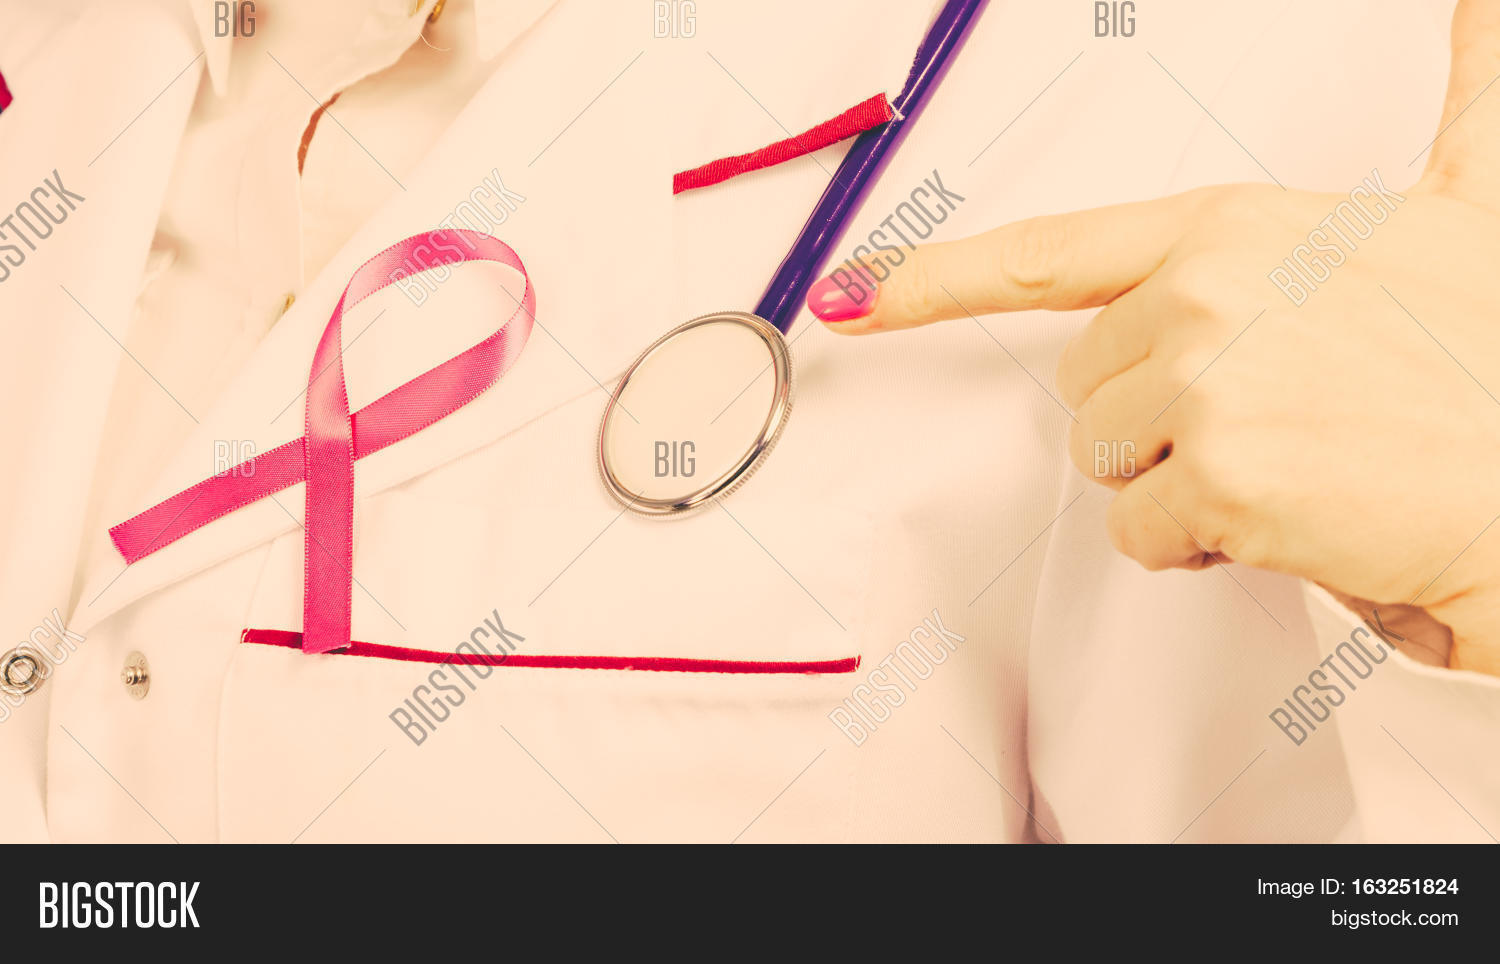 White apron health - Women Fight For Health Breast Cancer Tumor Concept Pink Ribbon And Blue Stethoscope On